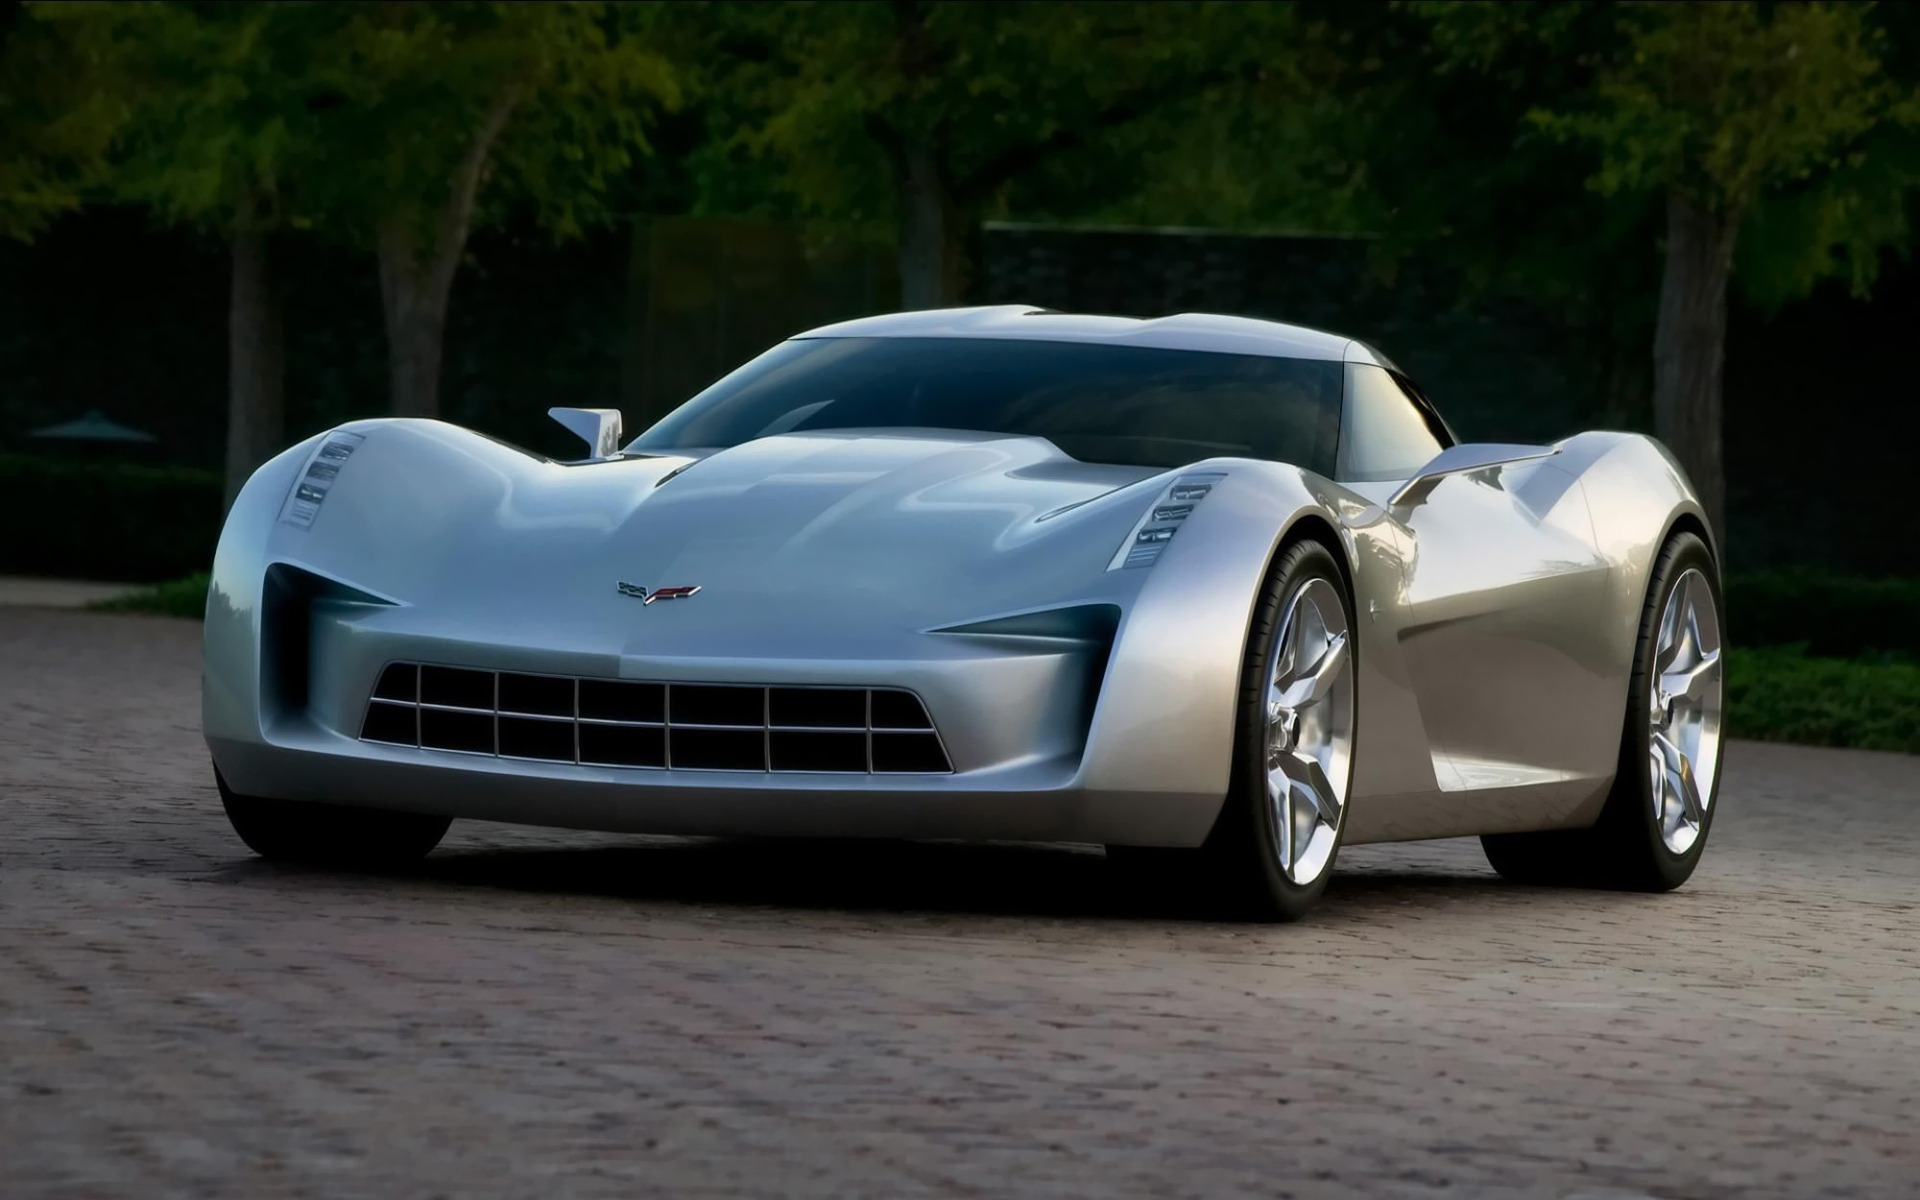 2014 Chevrolet Corvette C7 wallpaper 28 1920x1200